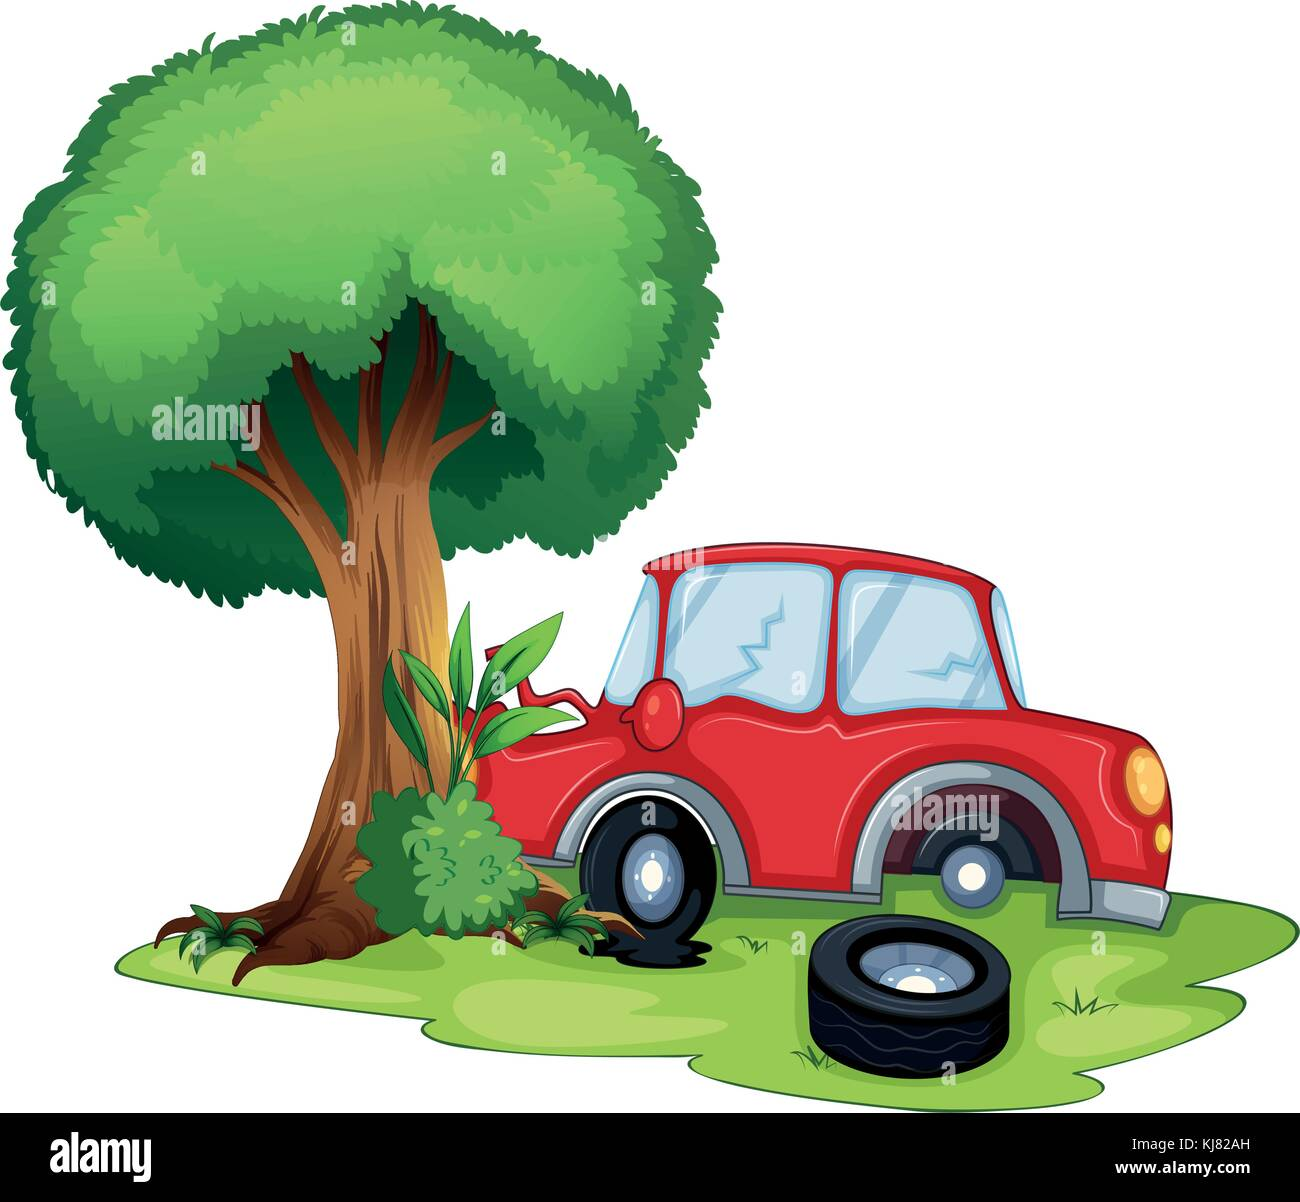 Illustration of a red car bumping on a tree on a white background - Stock Vector